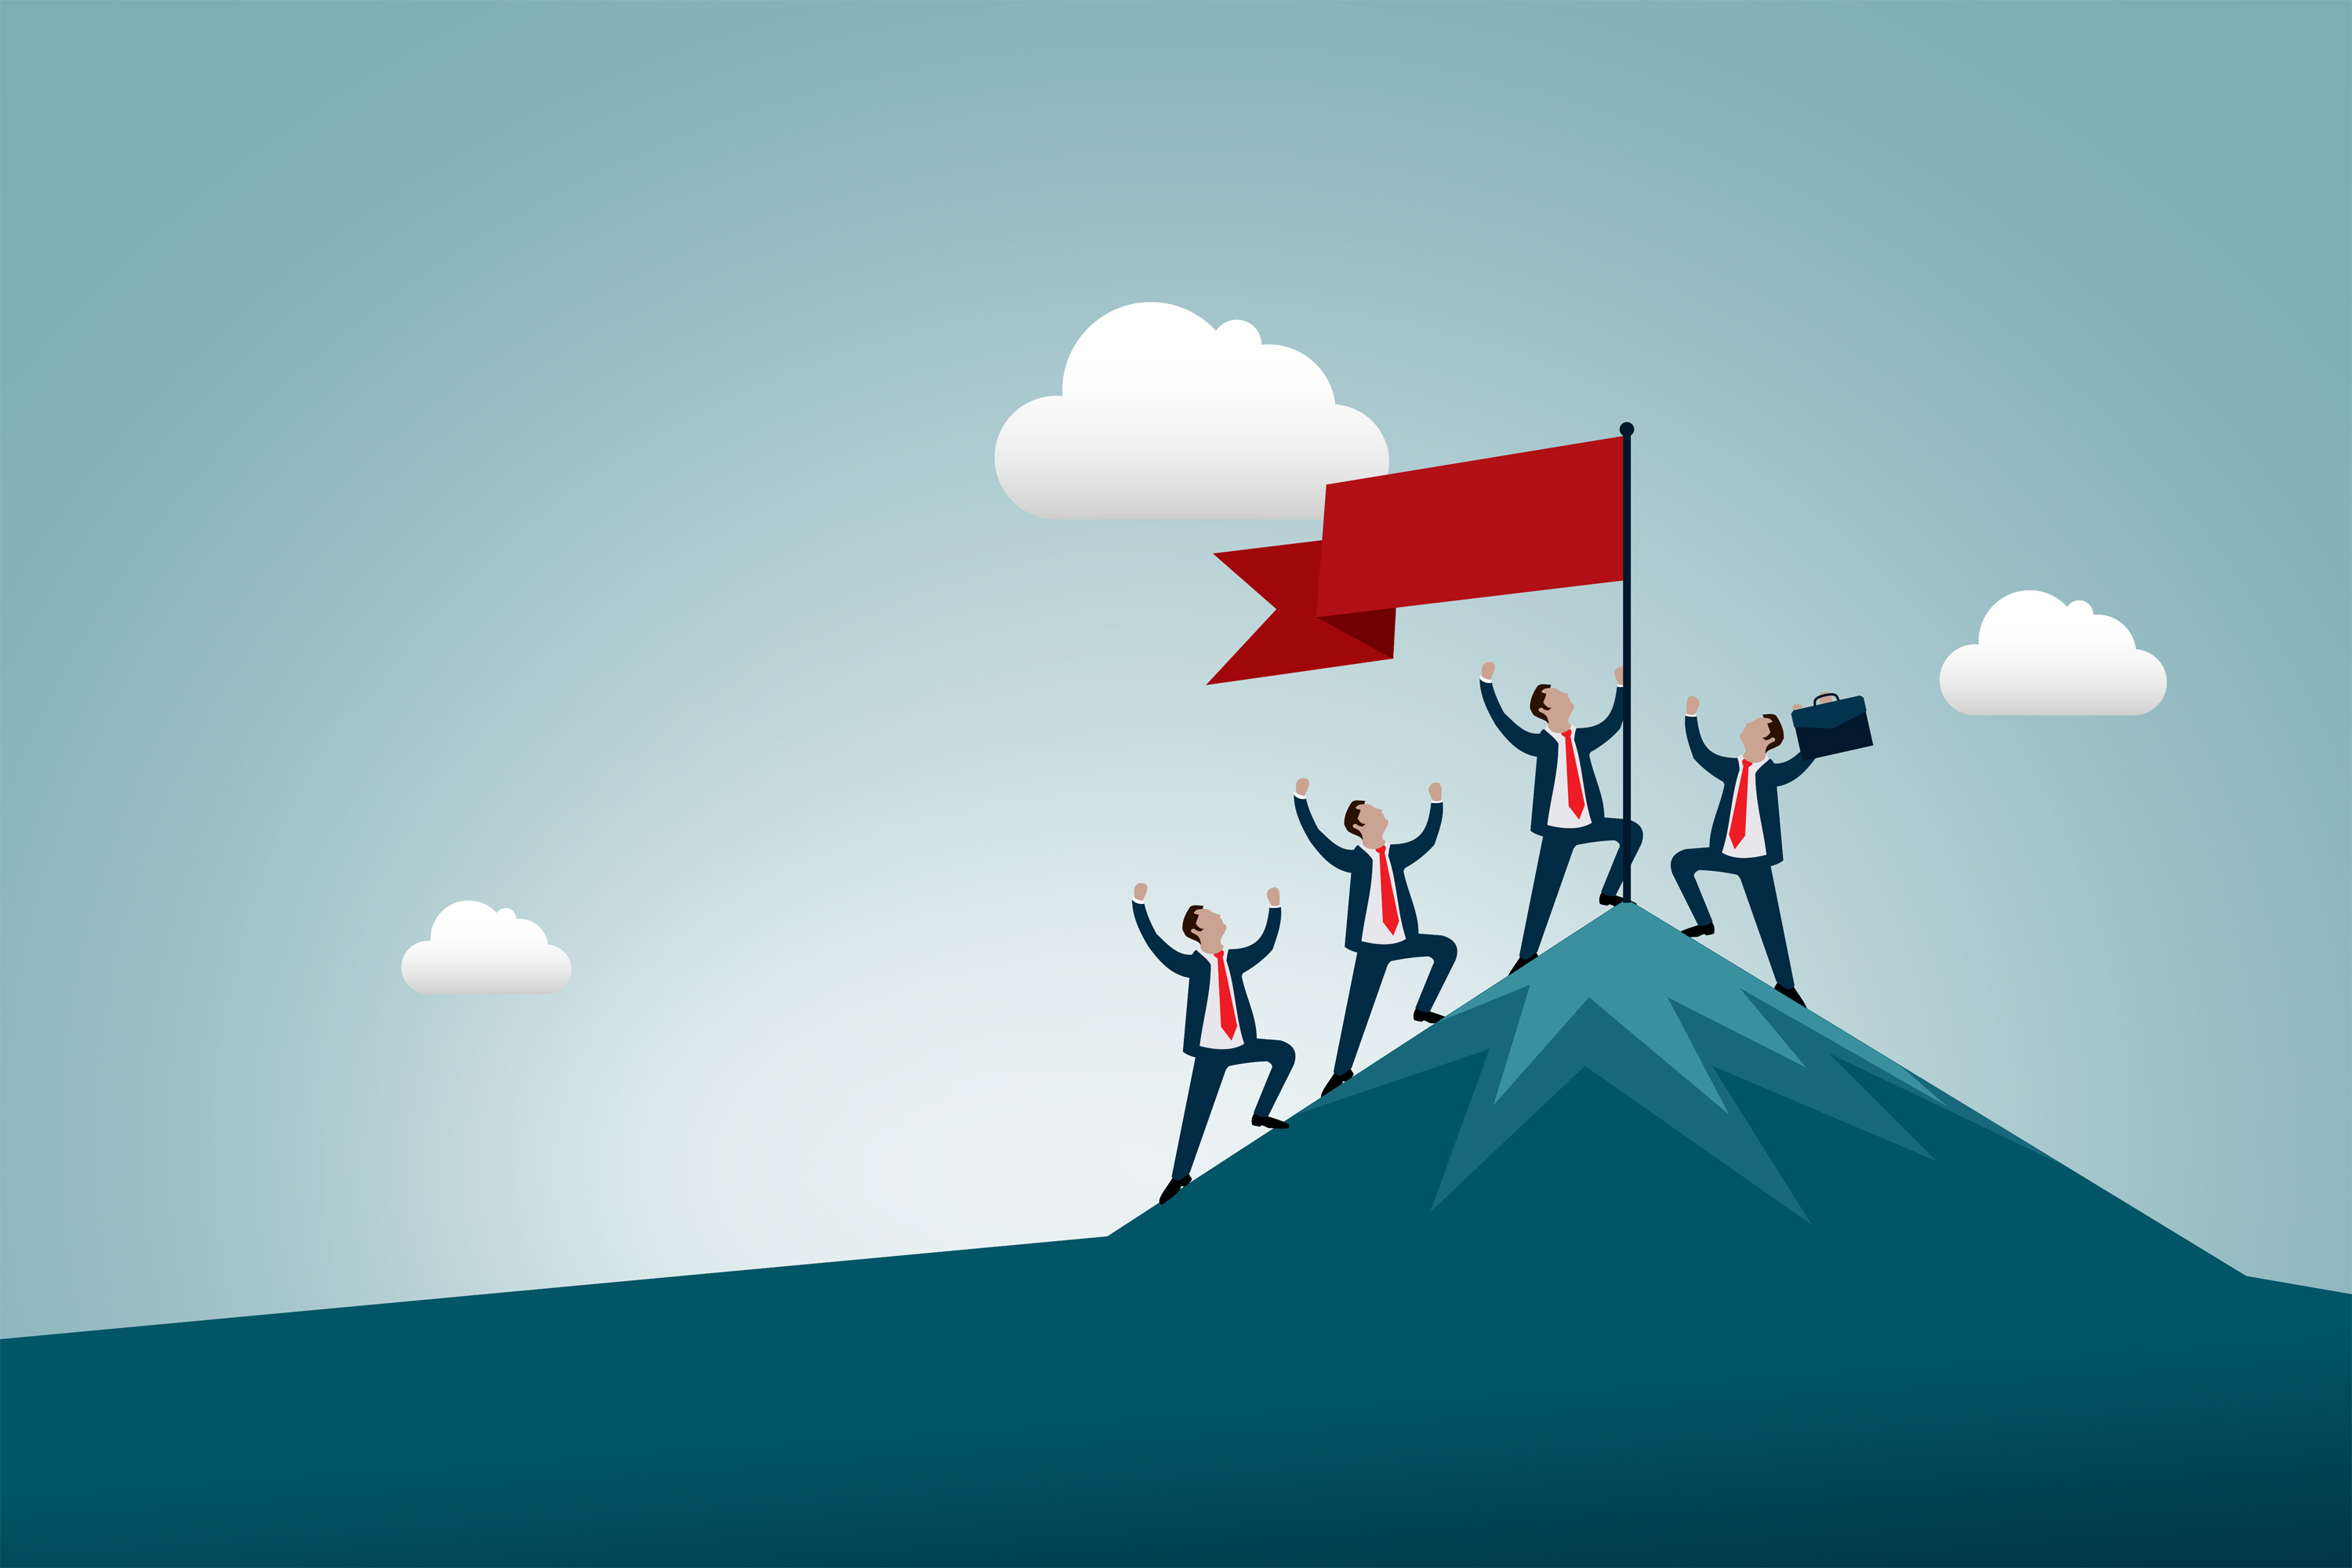 Work and Business Success and Achievement - Men Conquering Mountain, Accomplishment, Origami, Resource, Red, HQ Photo